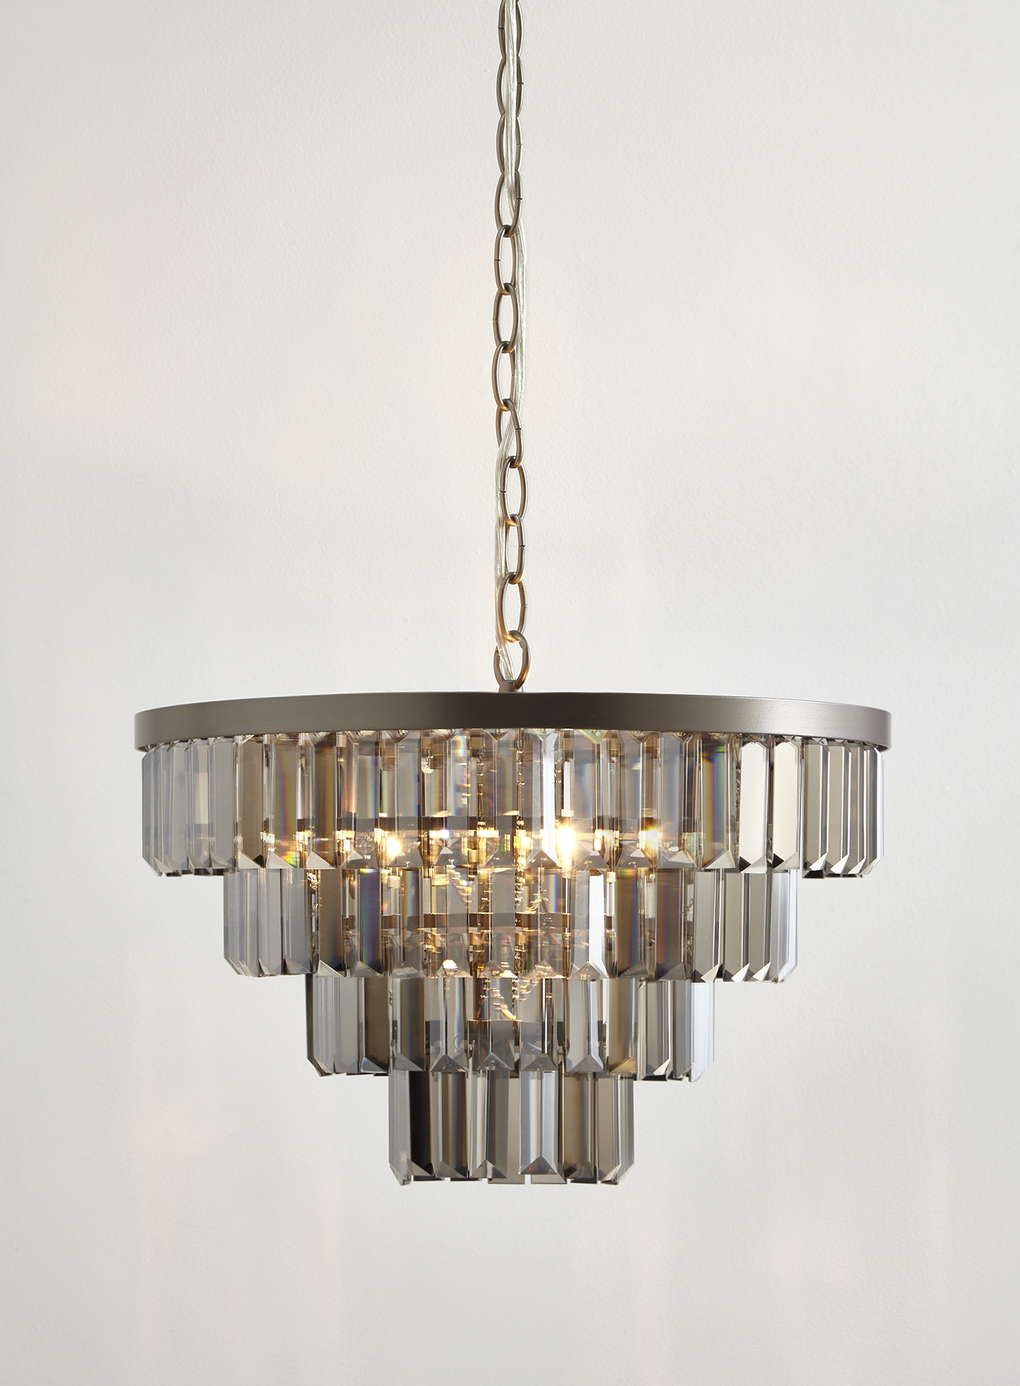 Amina chandelier pendant light bhs light me up pinterest amina chandelier pendant light bhs aloadofball Images